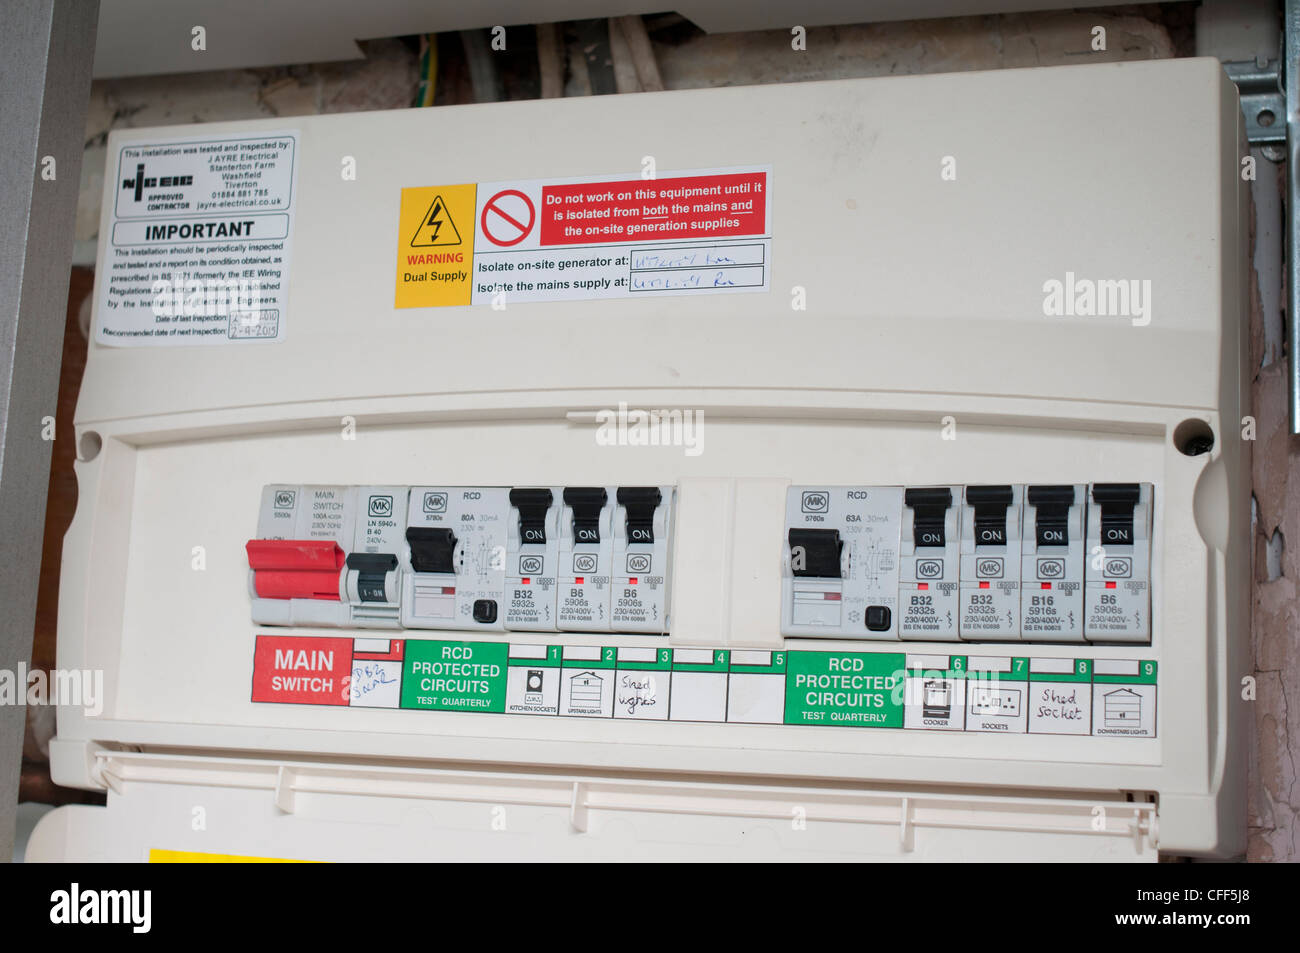 domestic fuse box CFF5J8 fuse box house stock photos & fuse box house stock images alamy home fuse box at gsmx.co